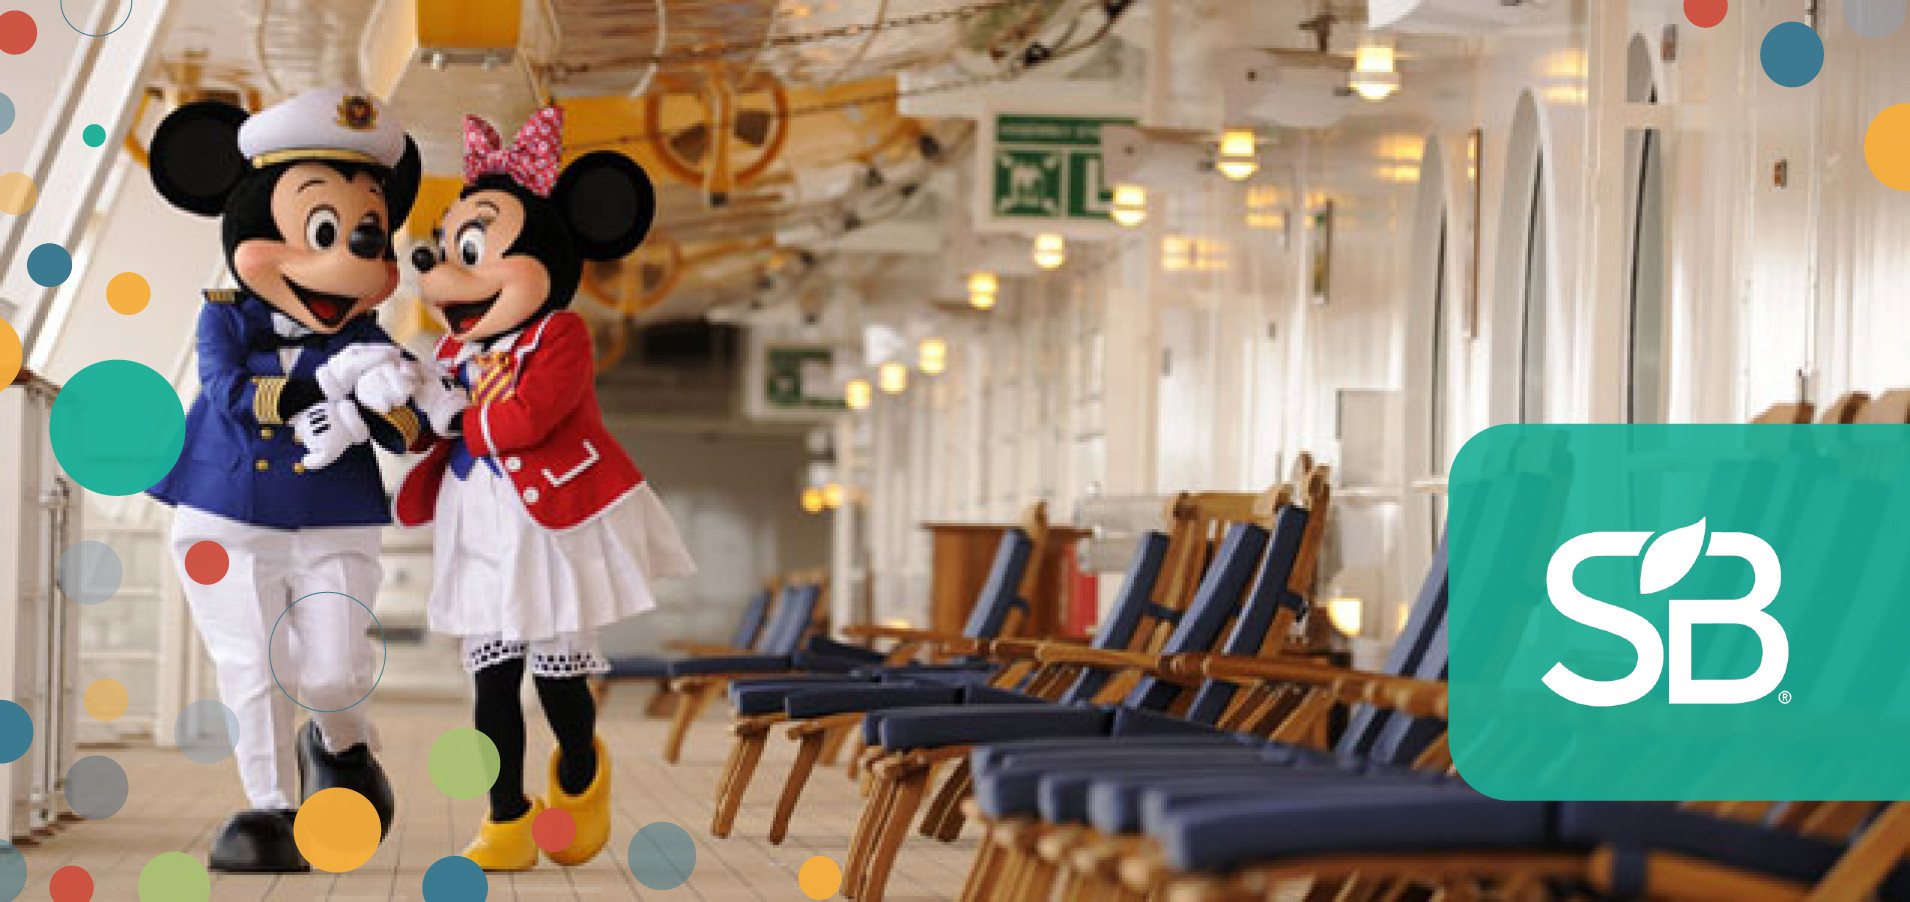 Disney Scores the Only 'A' on Cruise Industry Environmental Report